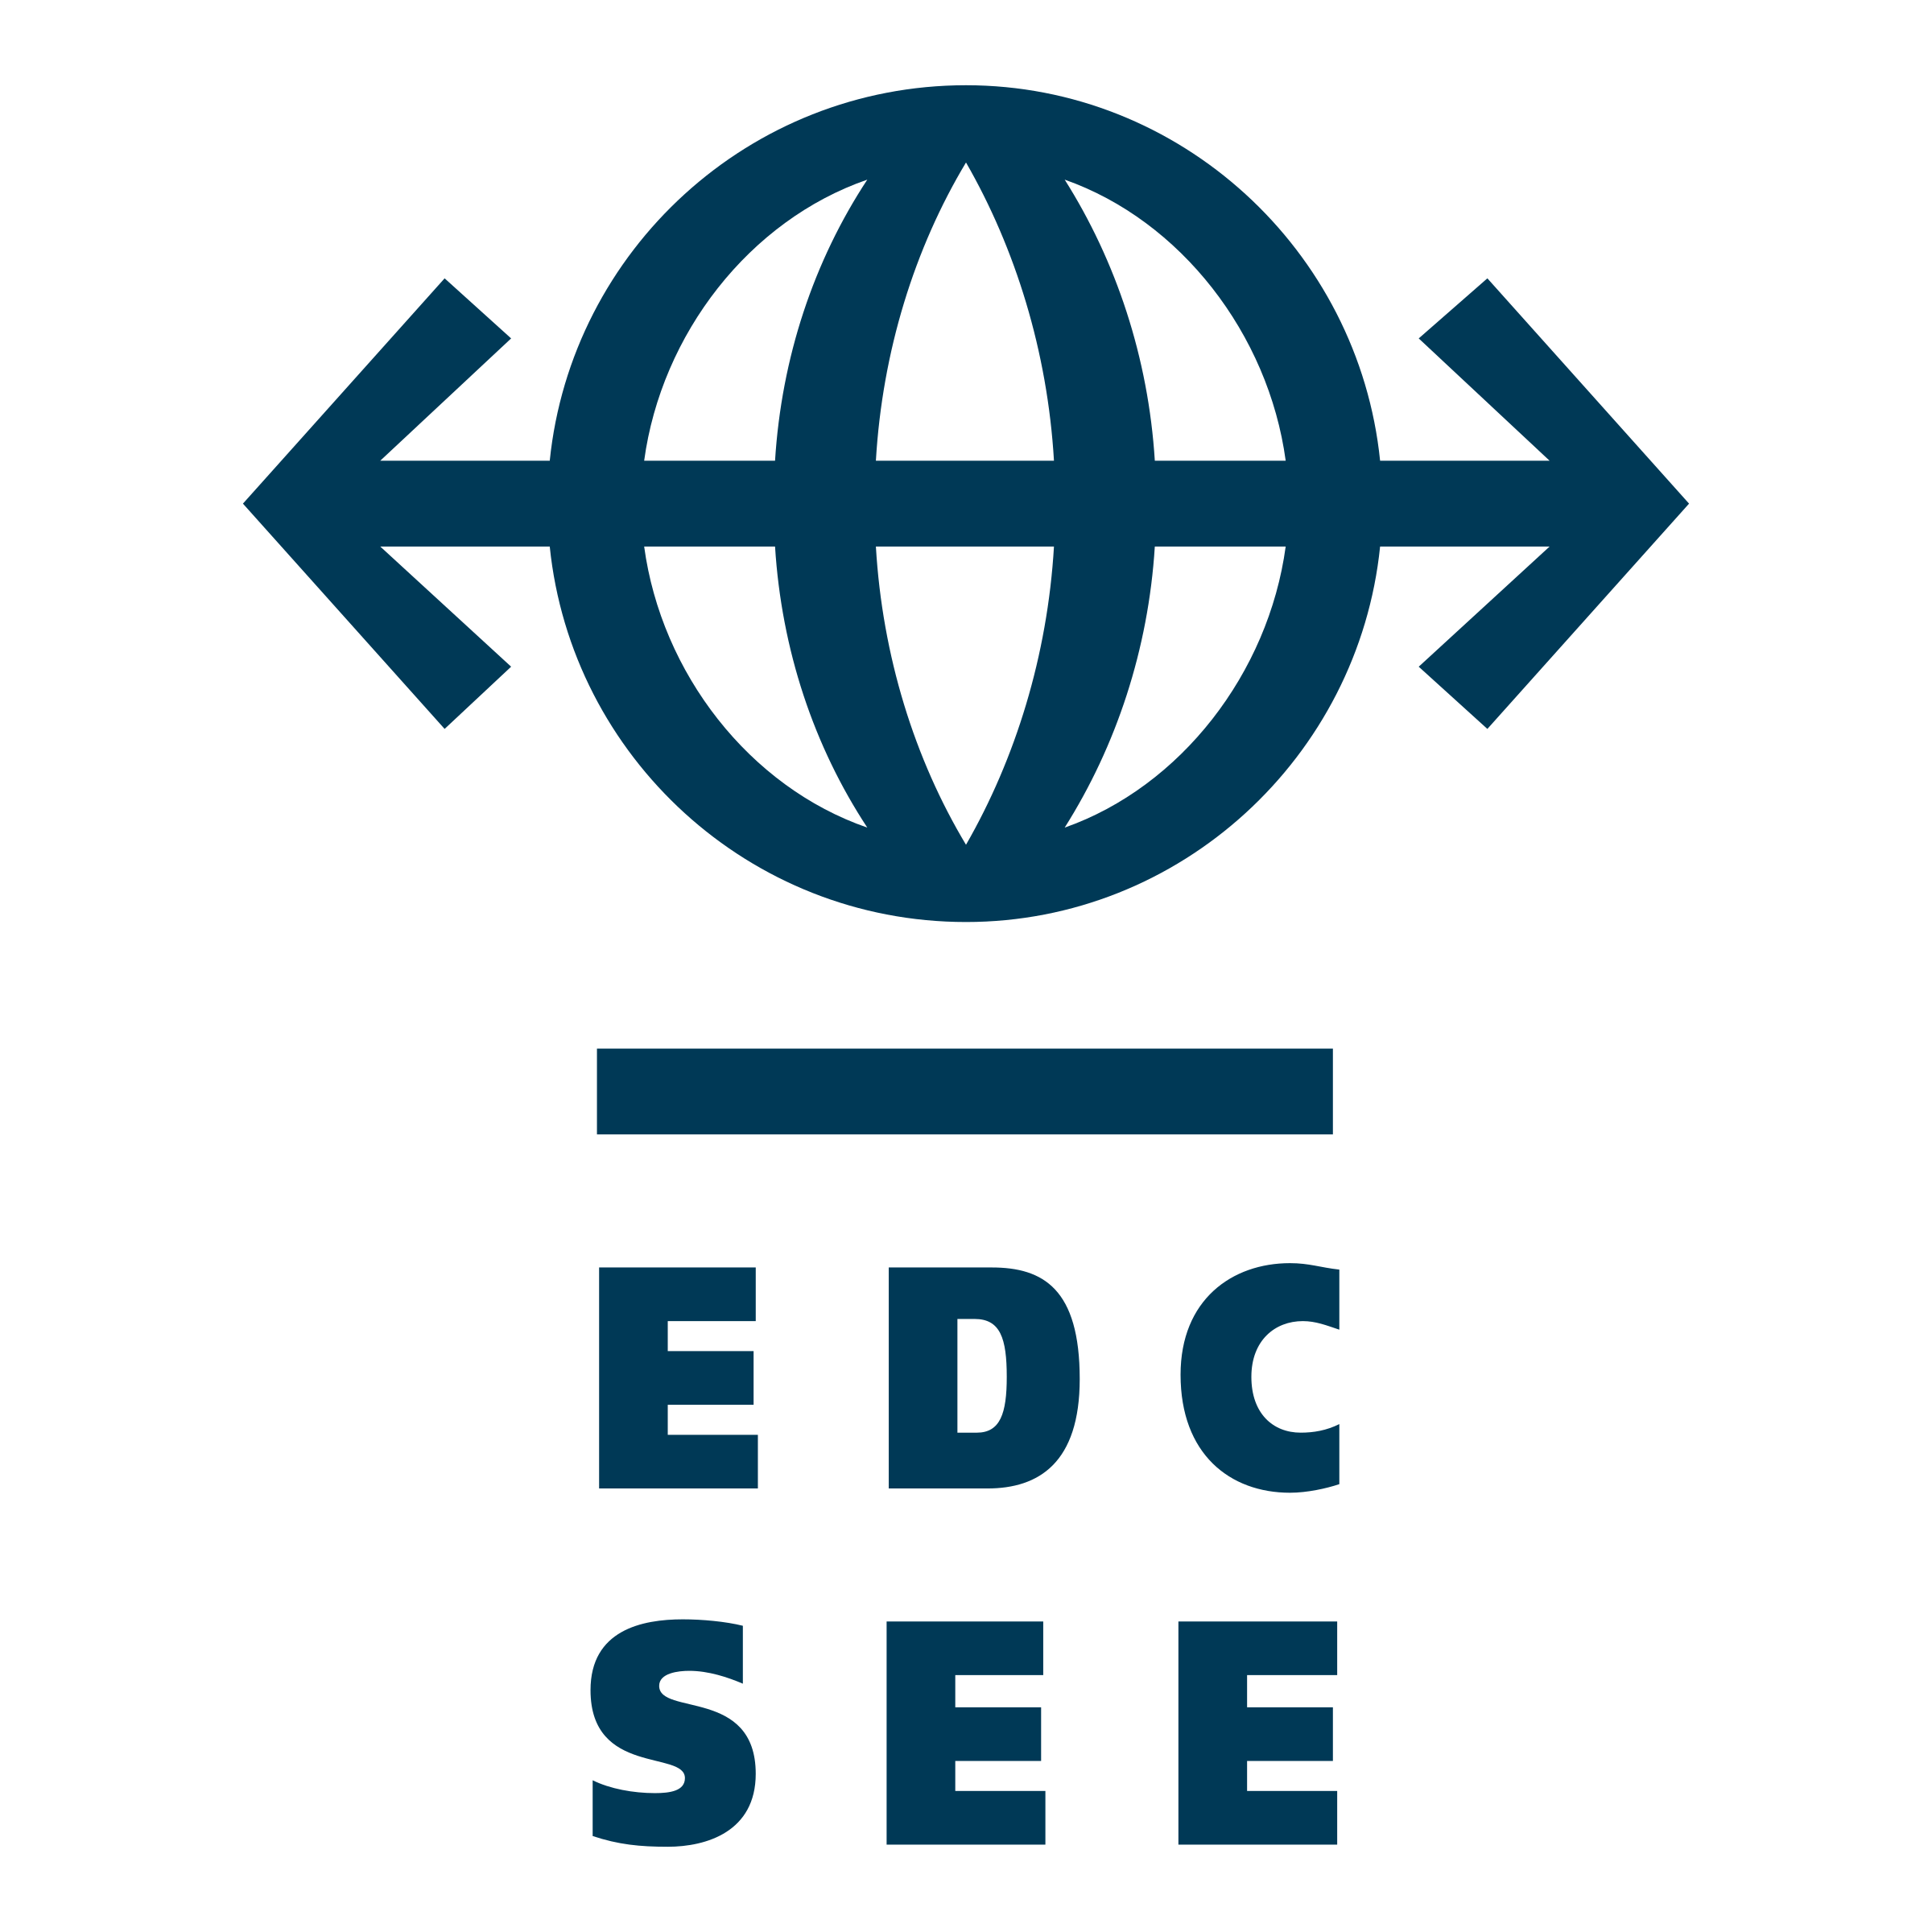 EDC SEE Logo PNG Transparent & SVG Vector.